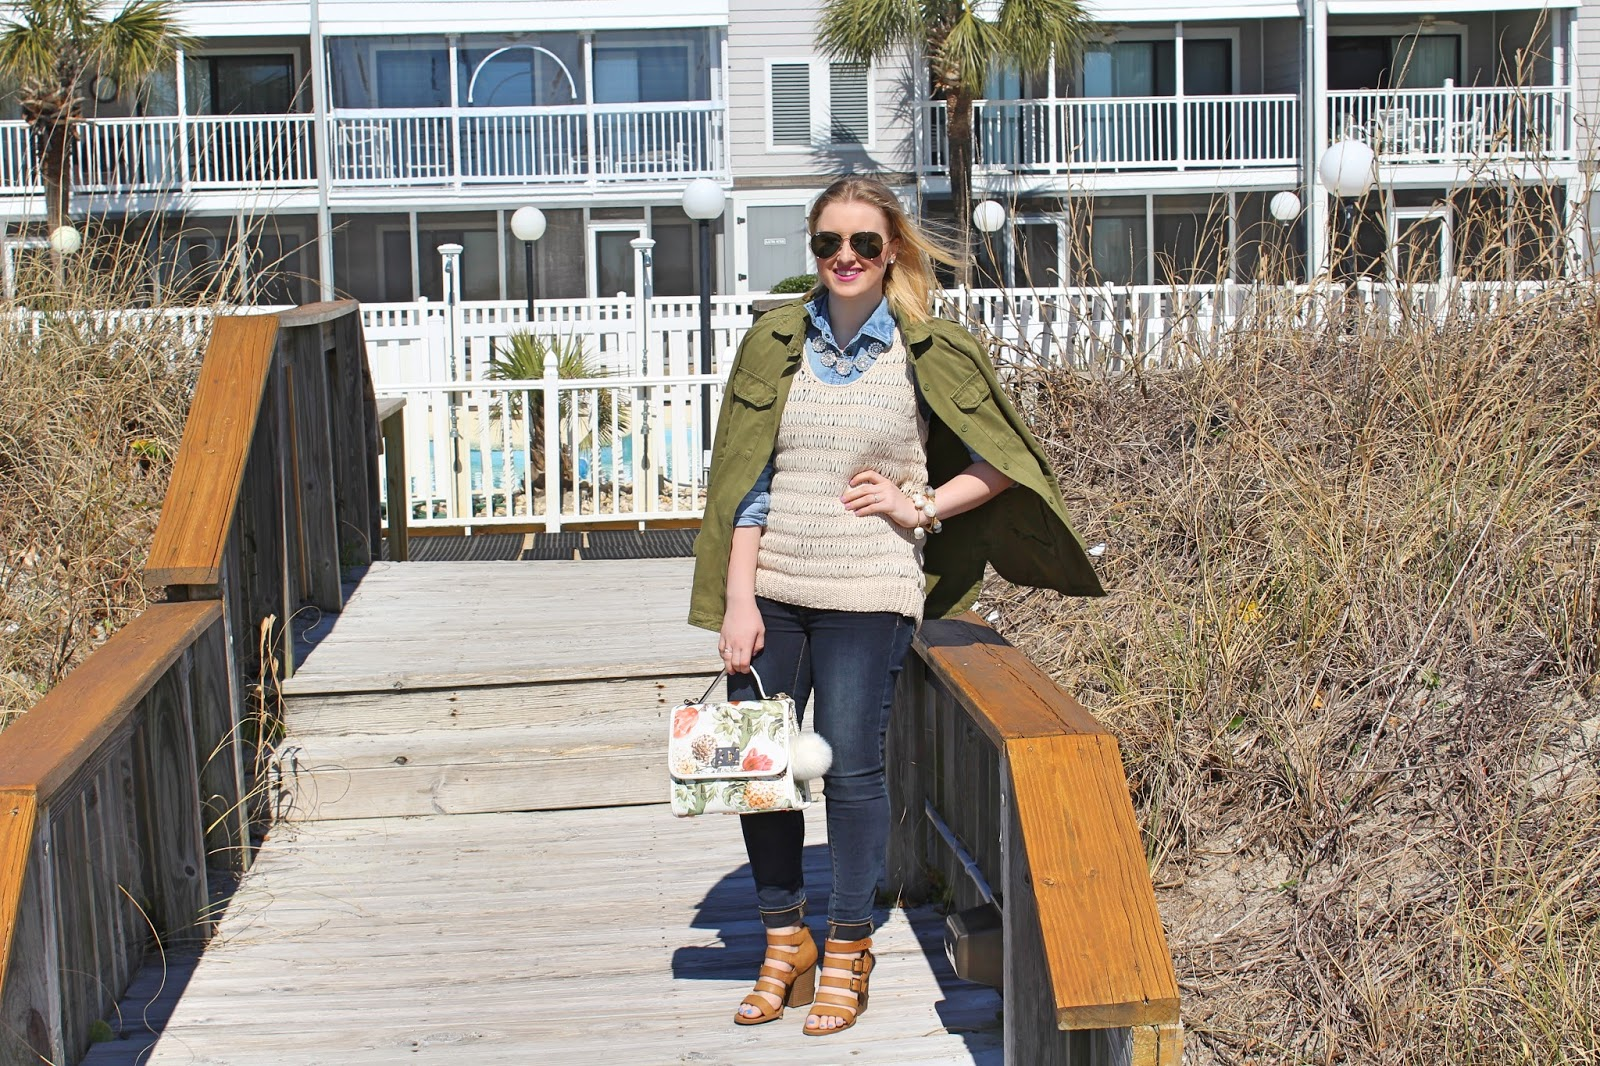 Winters by the beach + An instant fashion update!